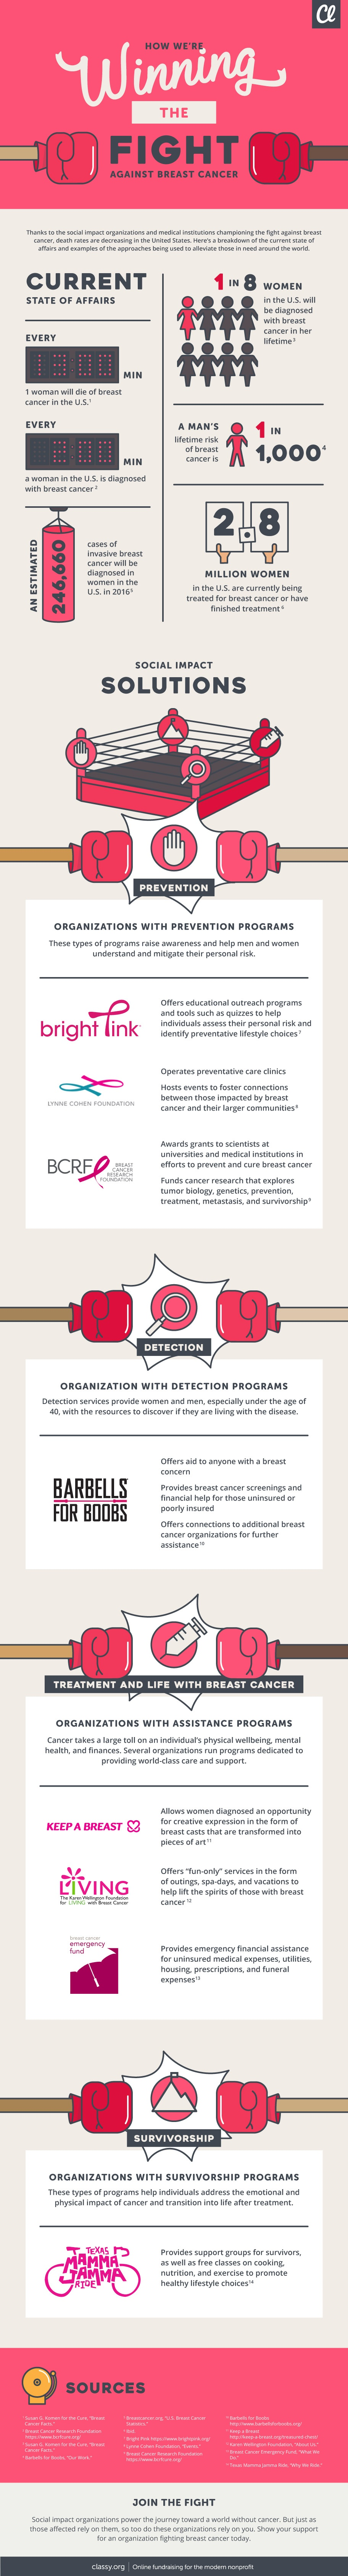 how nonprofits fight breast cancer infographic